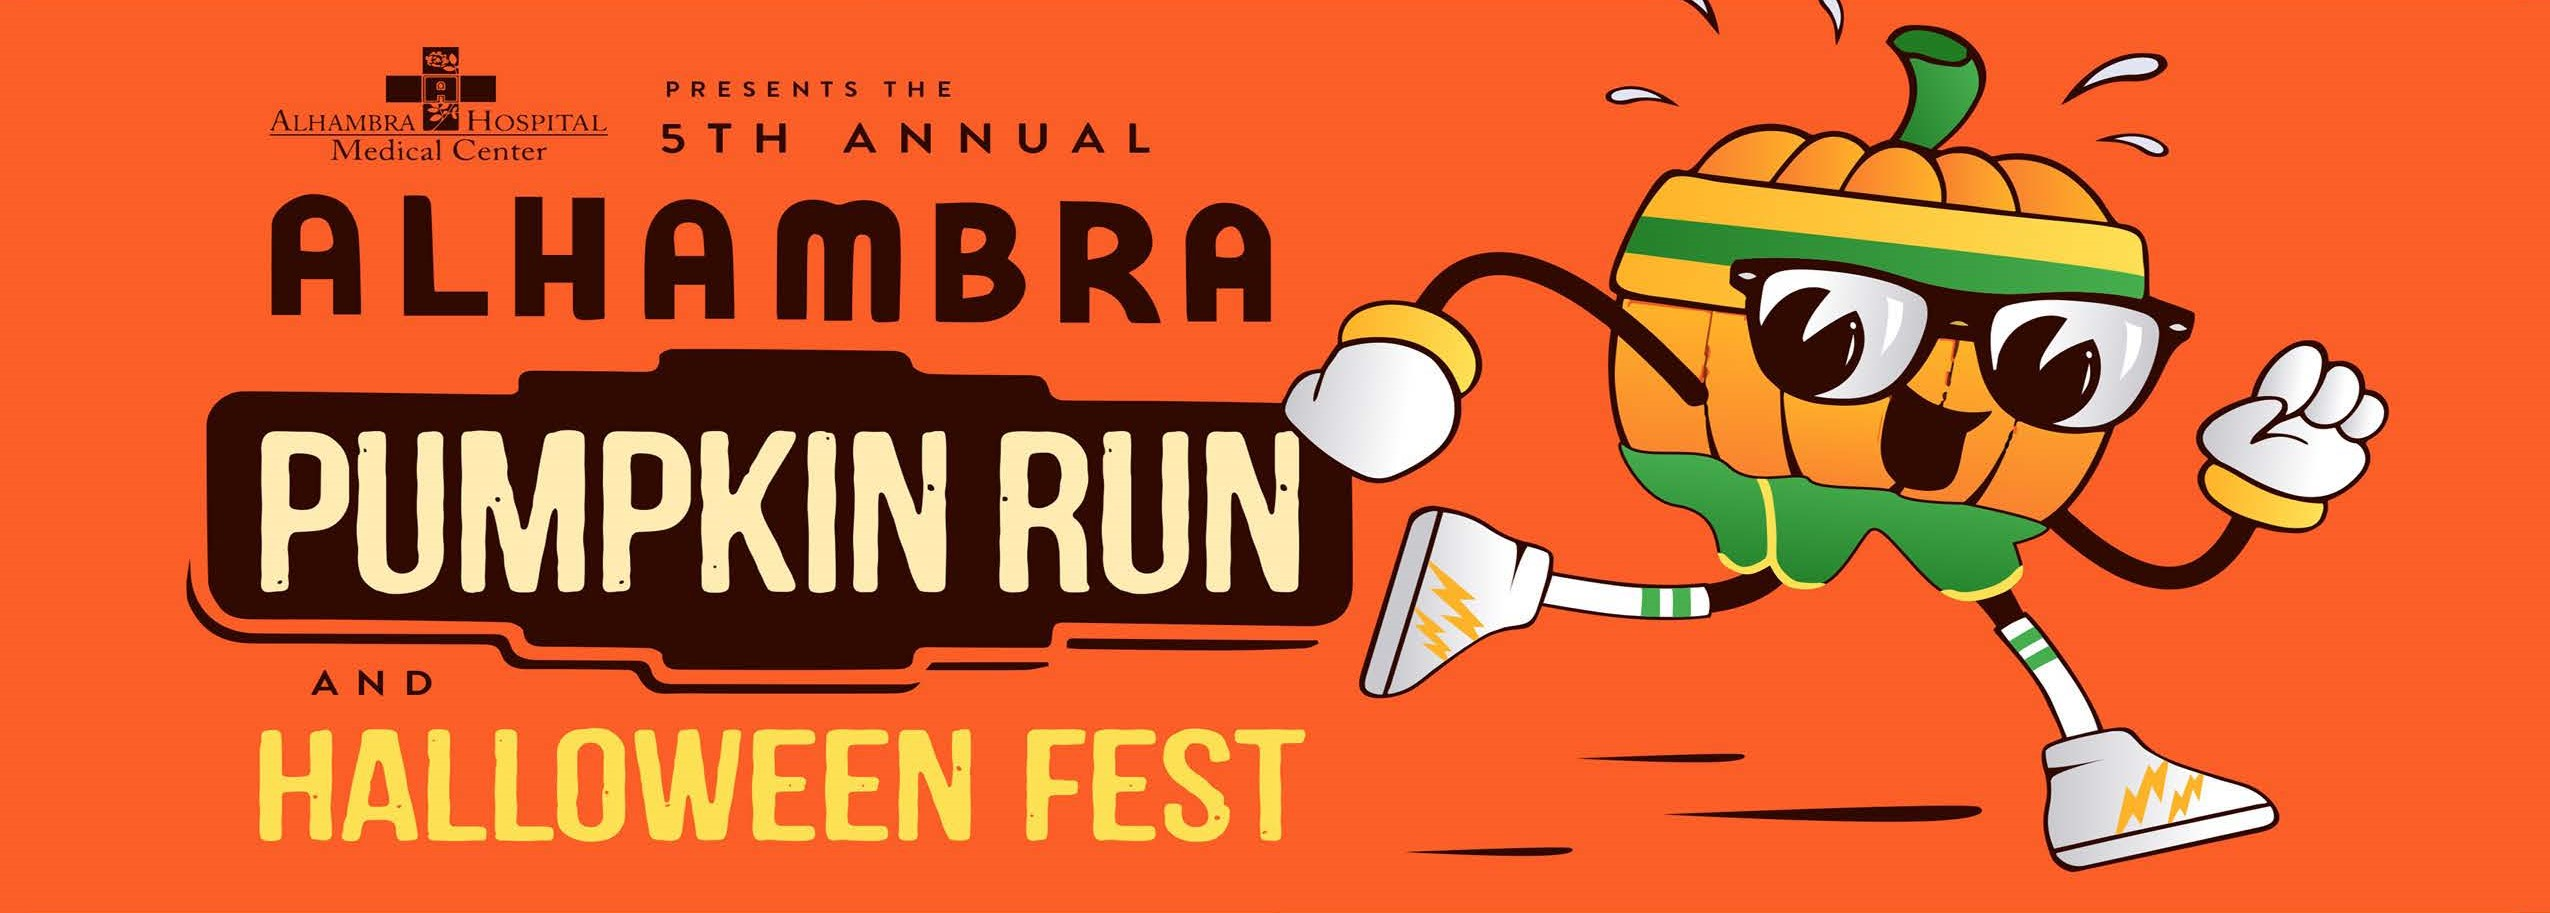 5th Annual Alhambra Pumpkin Run & Halloween Fest Logo